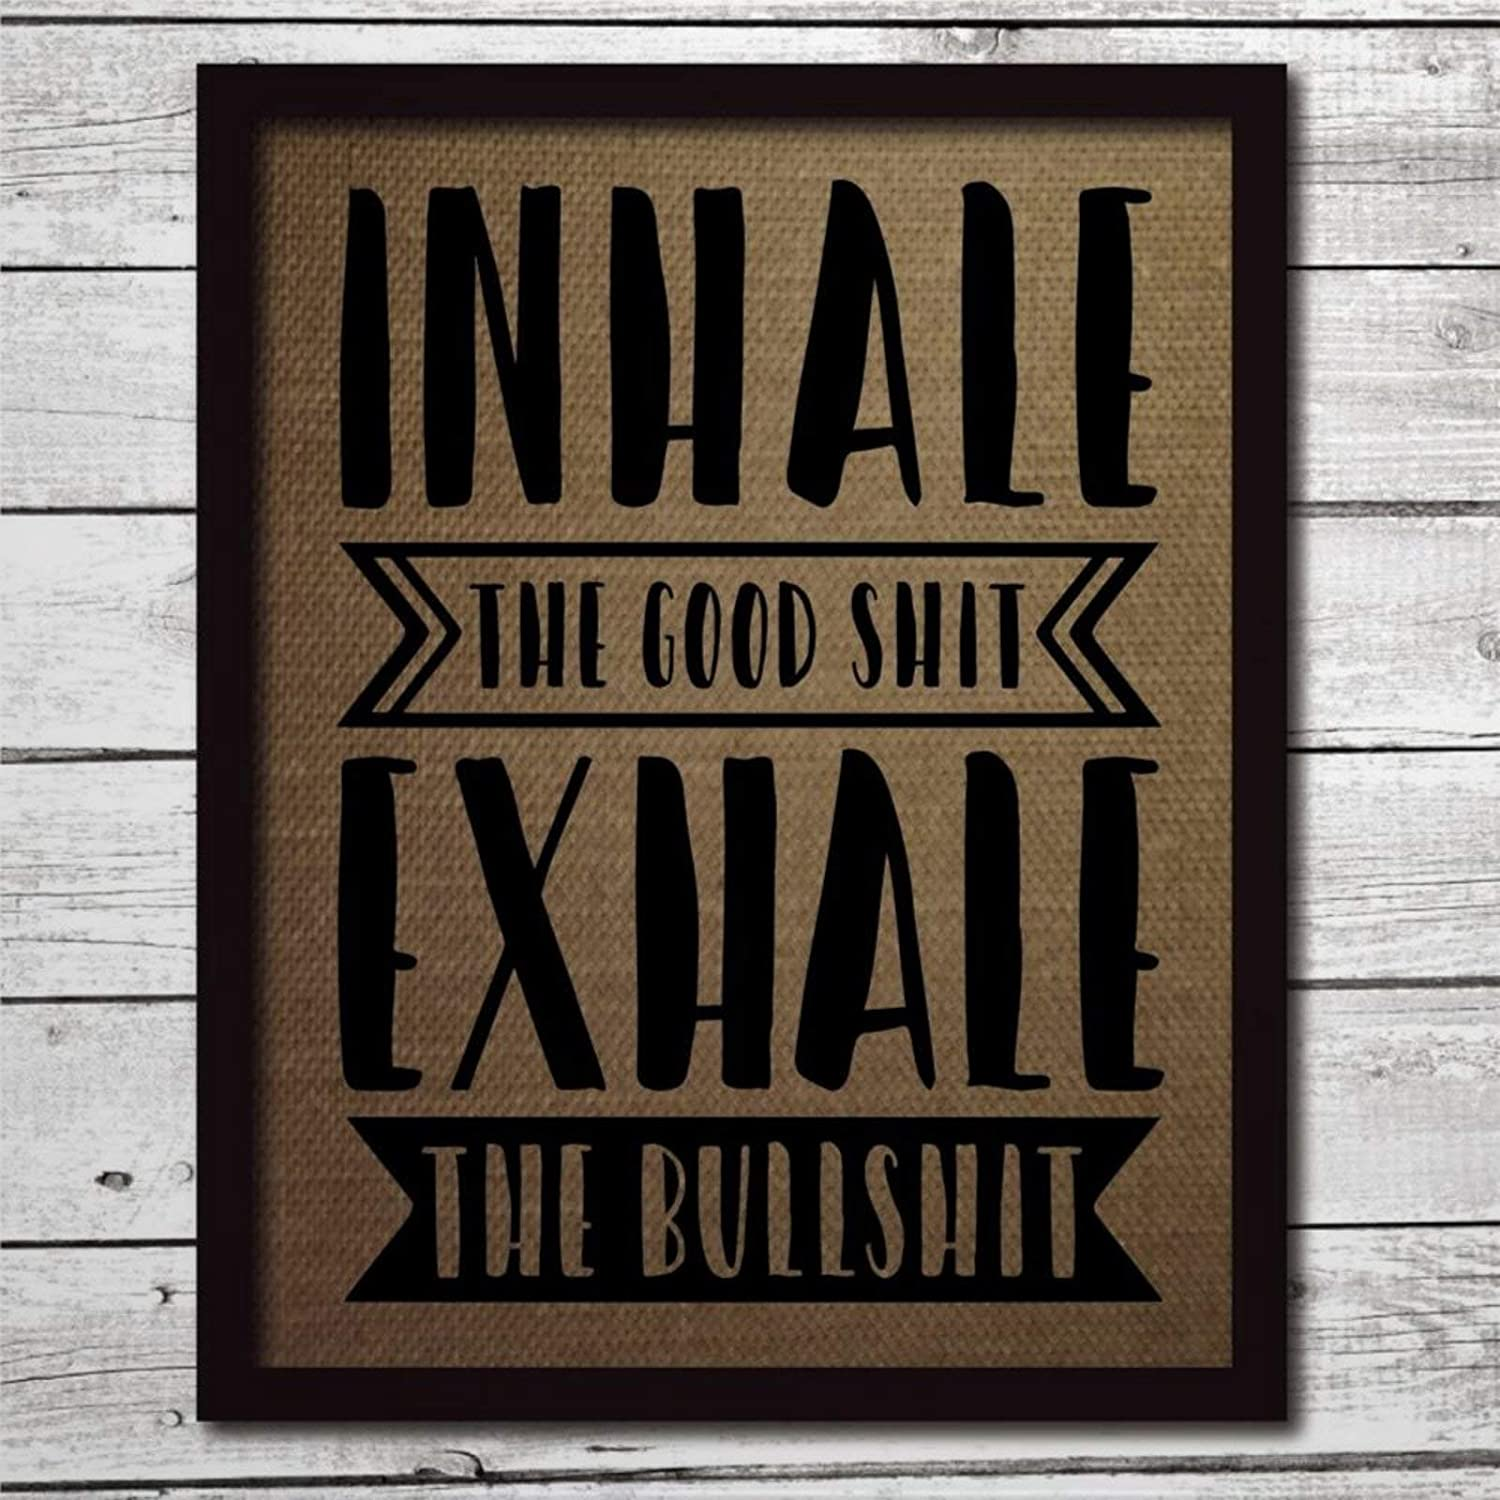 DONL9BAUER Wood Framed Plaque Inhale The Good Shit Exhale The Bullshit Funny Yoga Gift Mural Farmhouse Rustic Wood Sign Wall Decor Perfect for Bar Office & Home 8x12